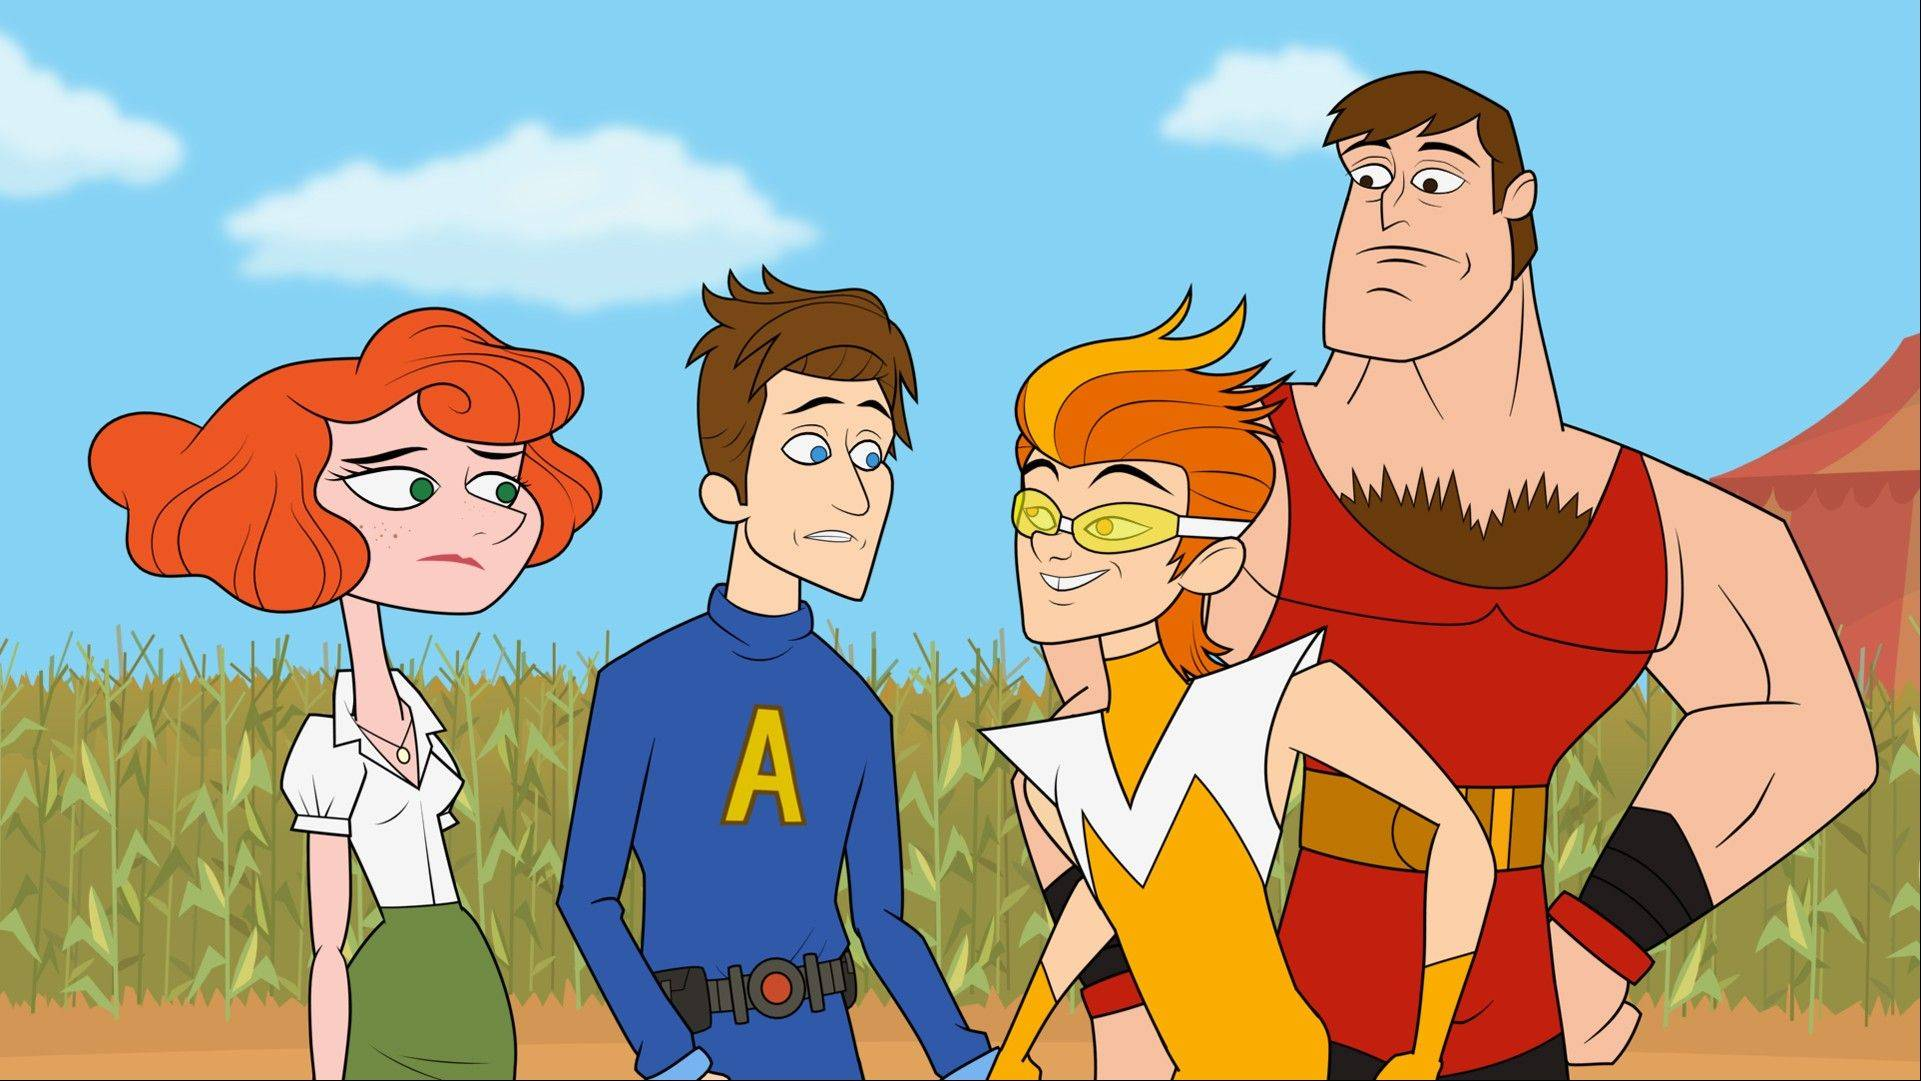 Characters from �The Awesomes,� from left, Concierge, voiced by Emily Spivey, Prock, voiced by Seth Meyers, Frantic, voiced by Taran Killam, and Muscleman, voiced by Ike Barinholtz. The animated series premieres Aug. 1, on Hulu.